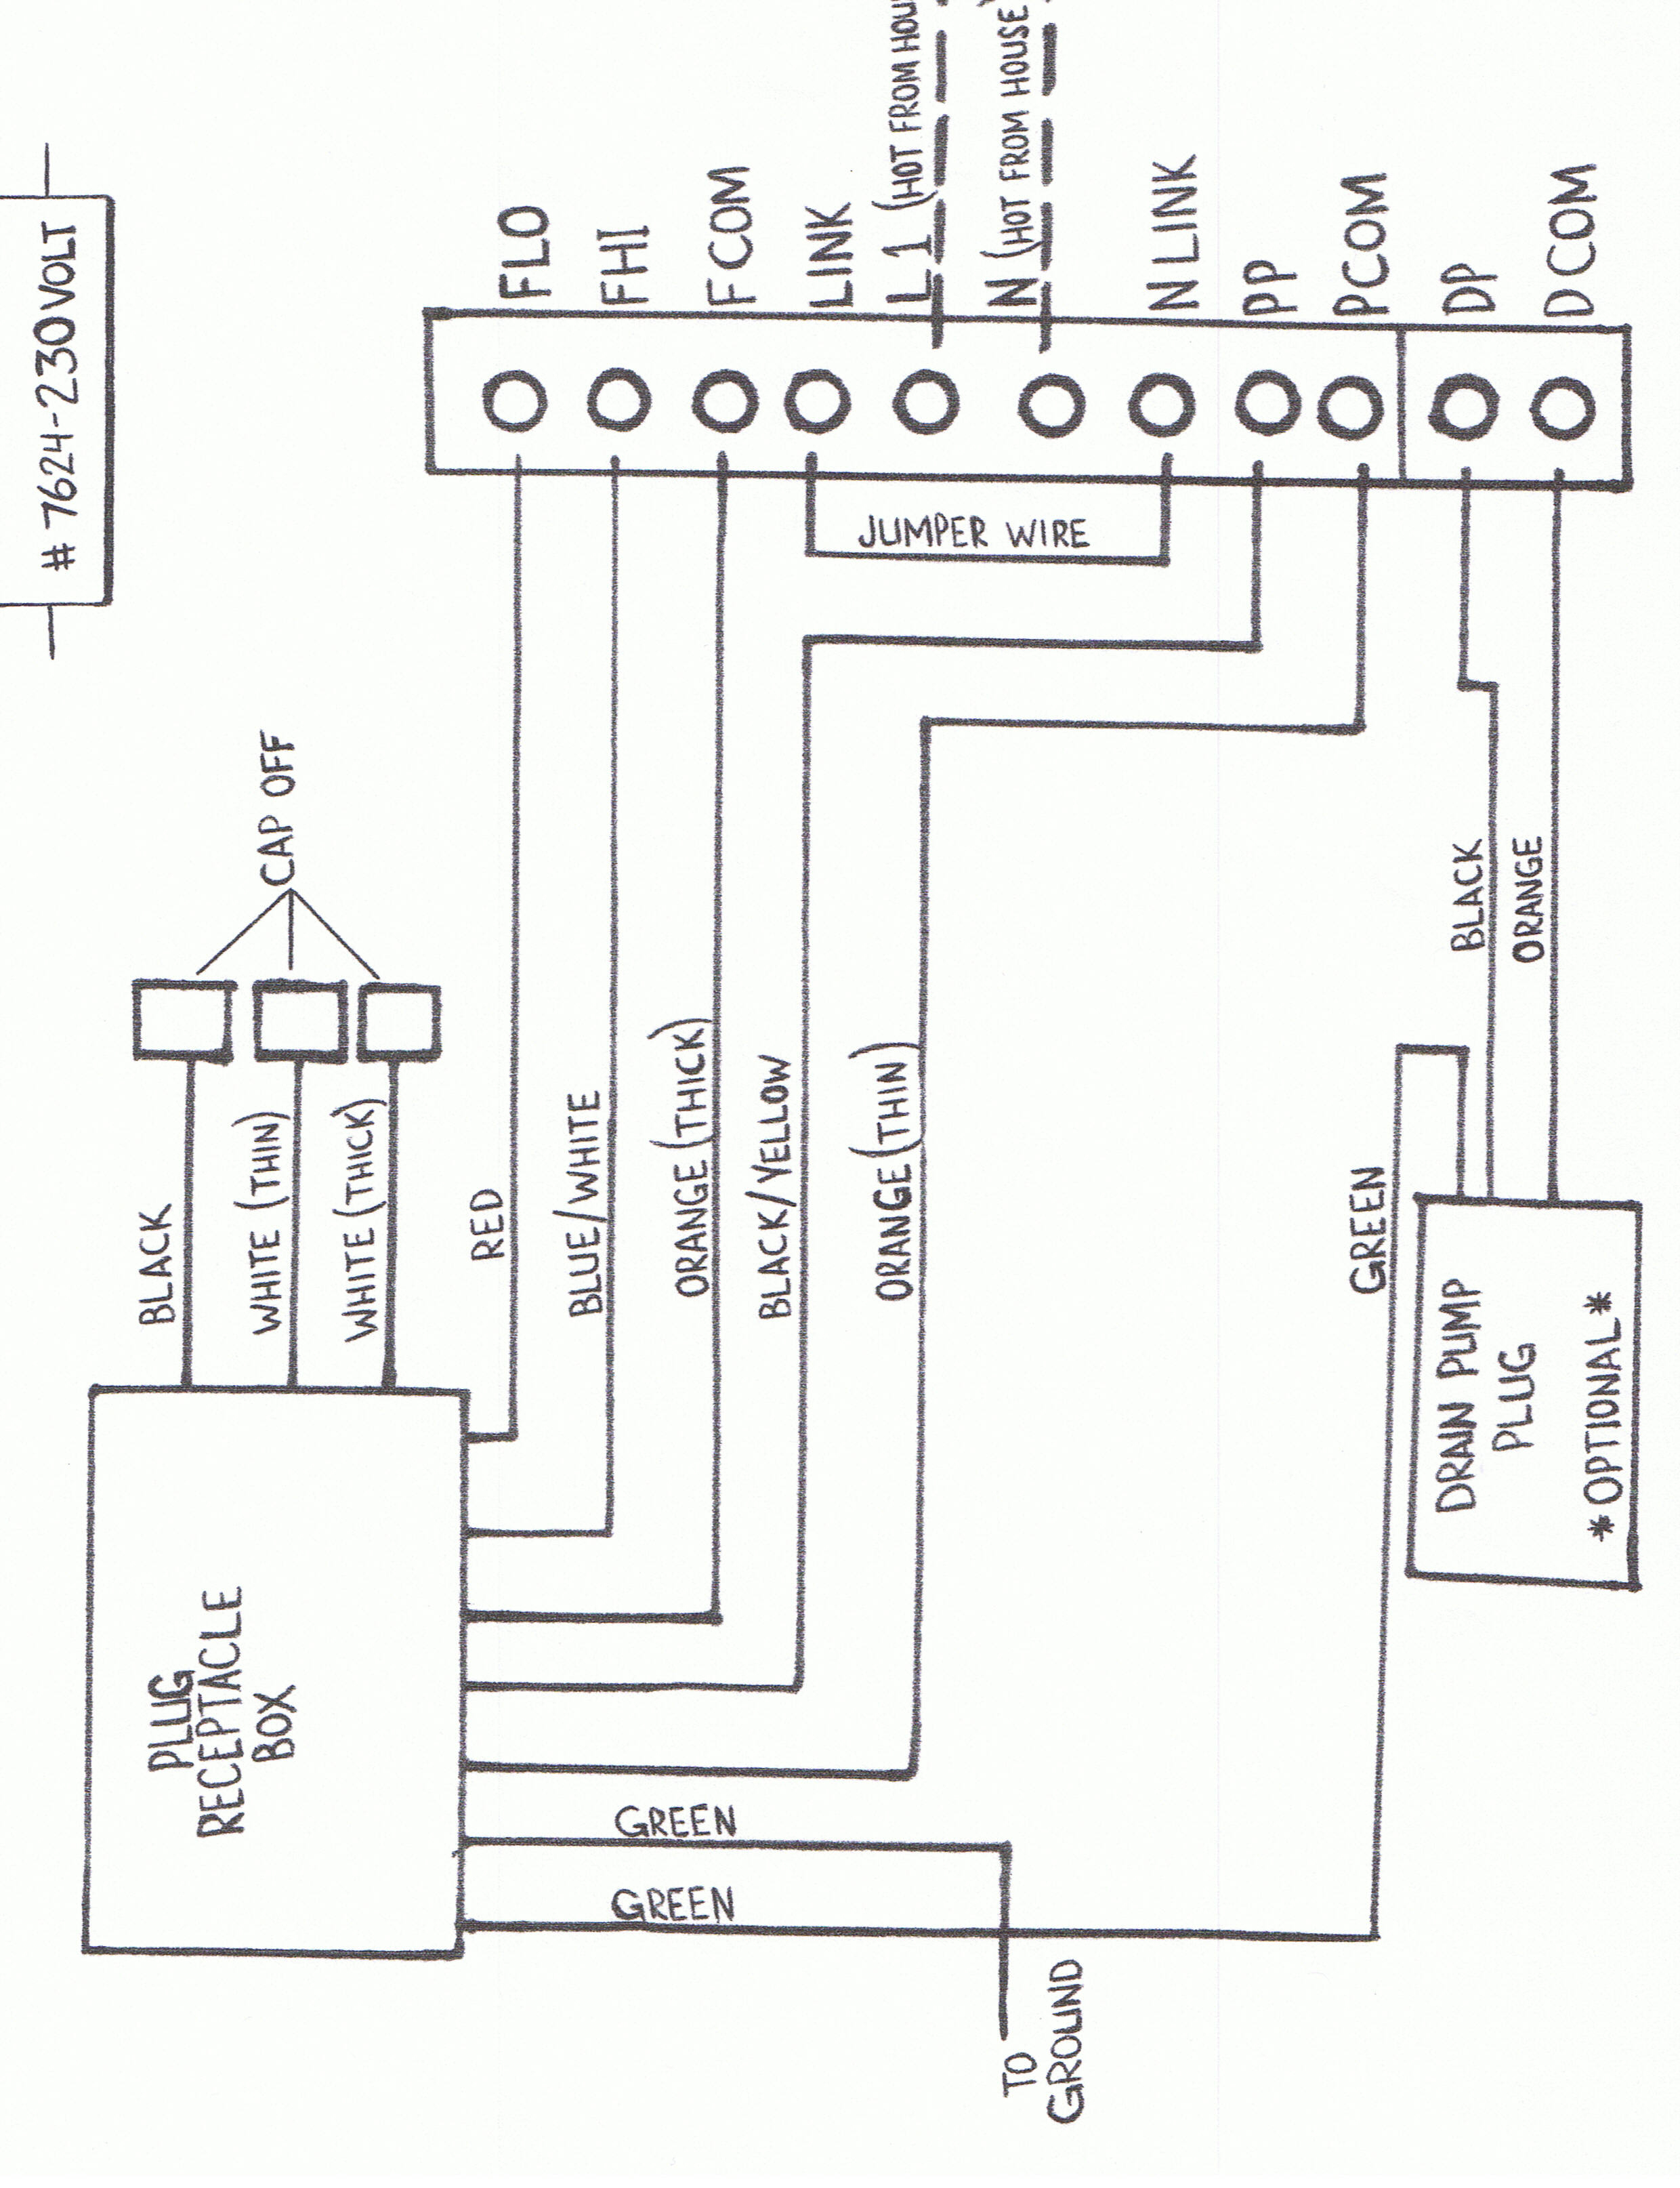 Swamp Cooler Switch Wiring Diagram | Wiring Diagram - Swamp Cooler Switch Wiring Diagram